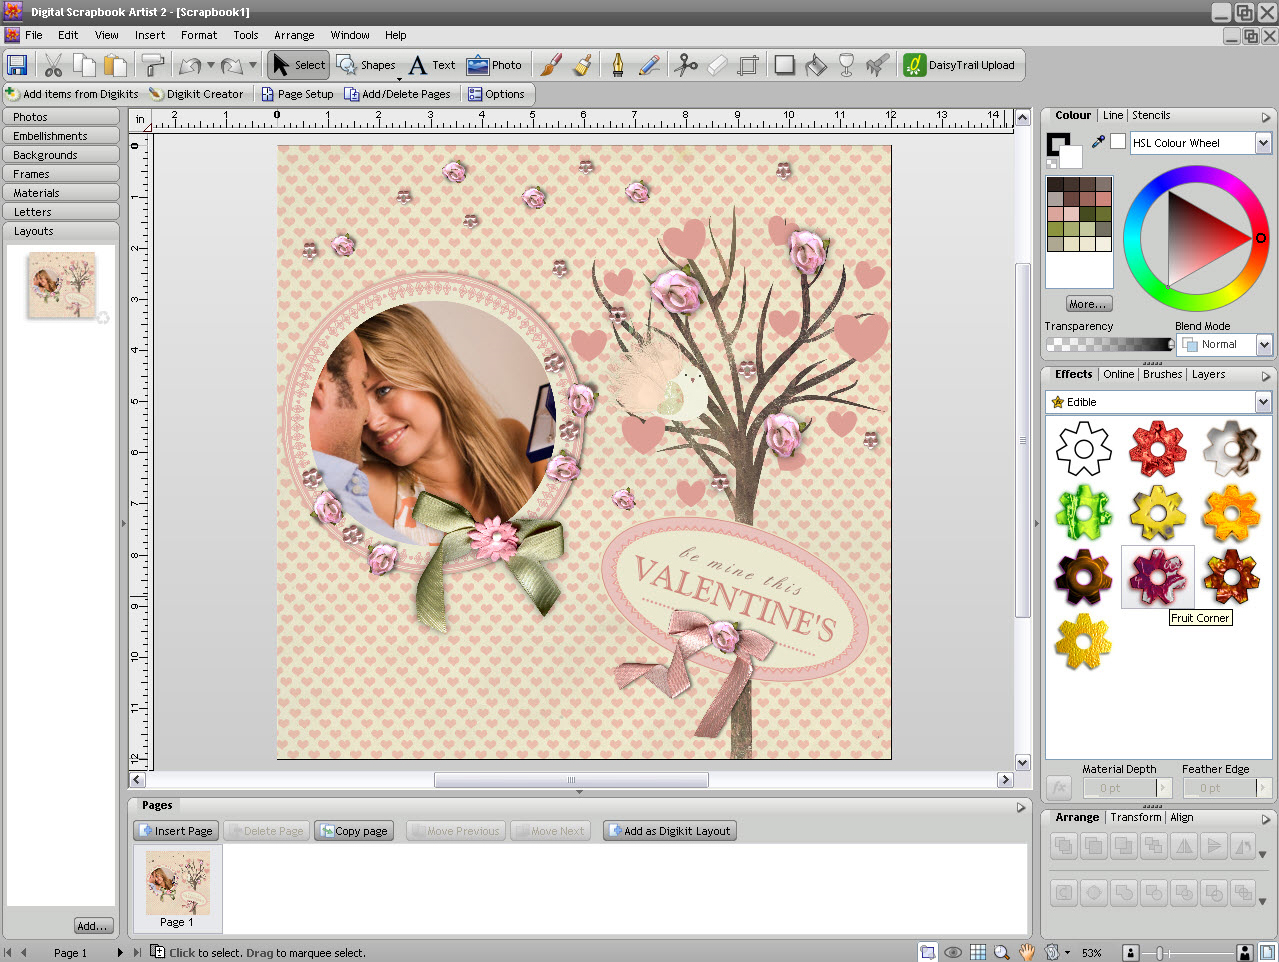 Graphic Design Software, Digital Scrapbook Artist 2 Screenshot